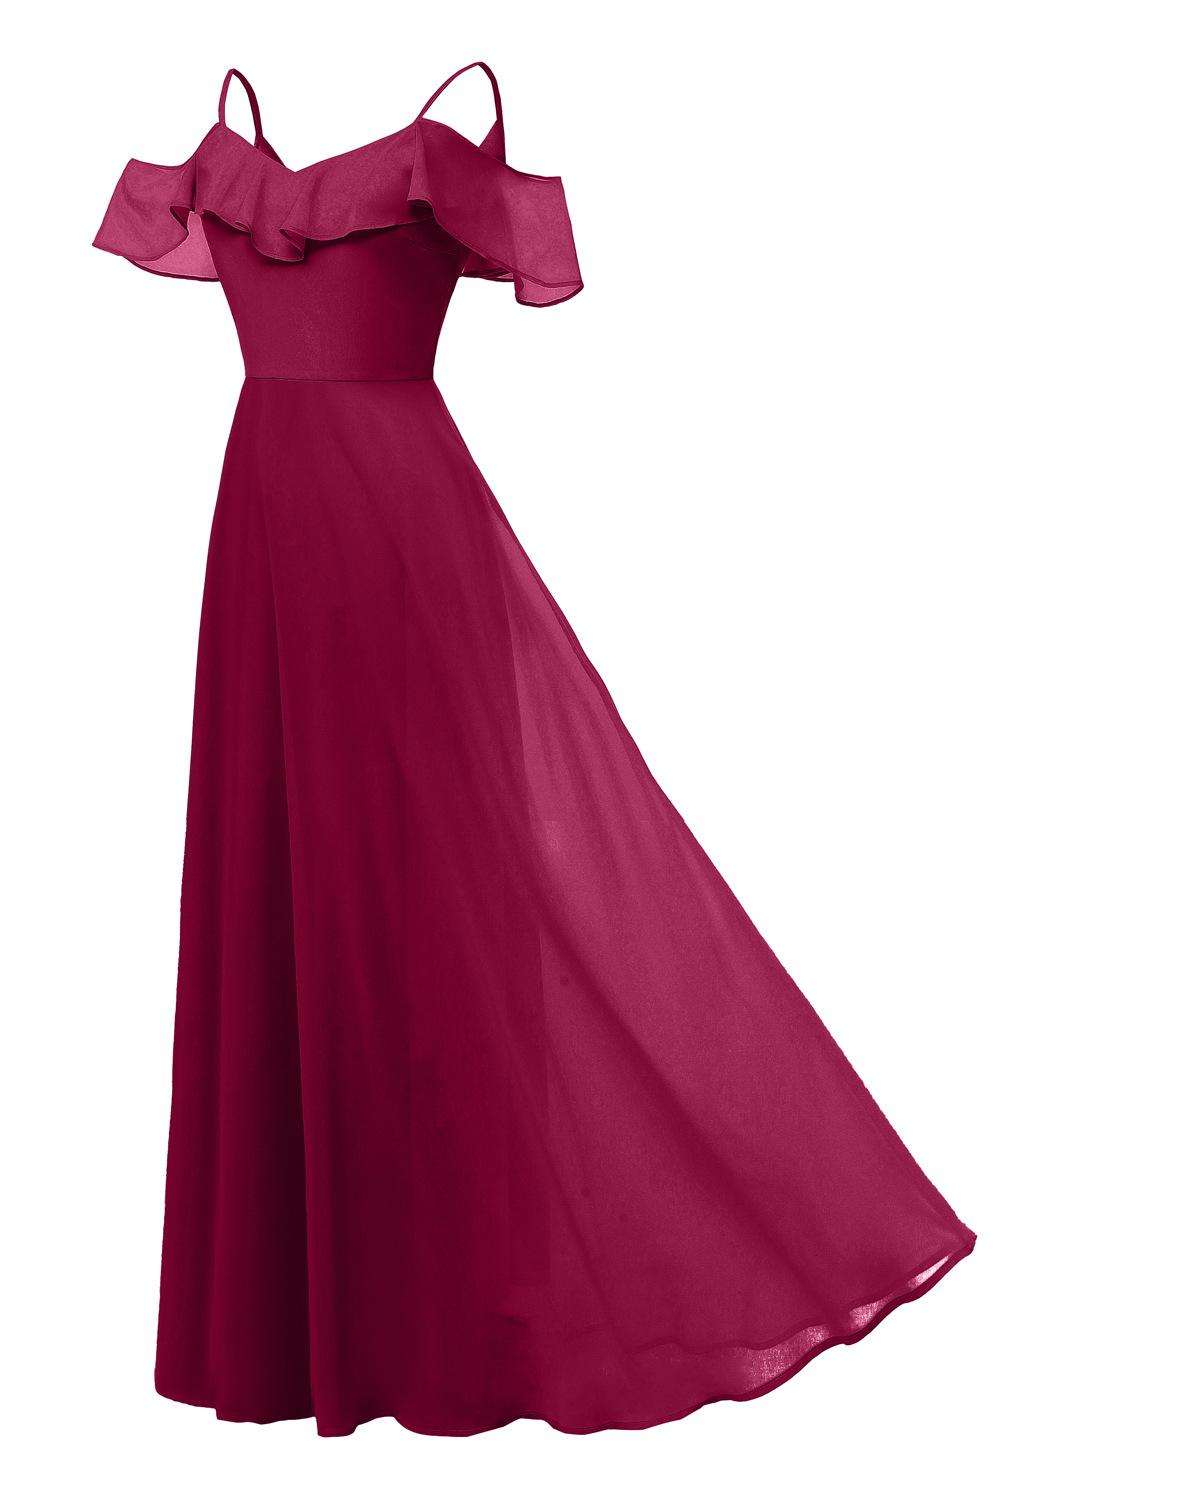 Sexy Off Shoulder Burgundy Robe Chiffon Mermaid Bridesmaid Dresses 2019 Longue Dentelle Navy Blue Wedding Guest Party Gowns